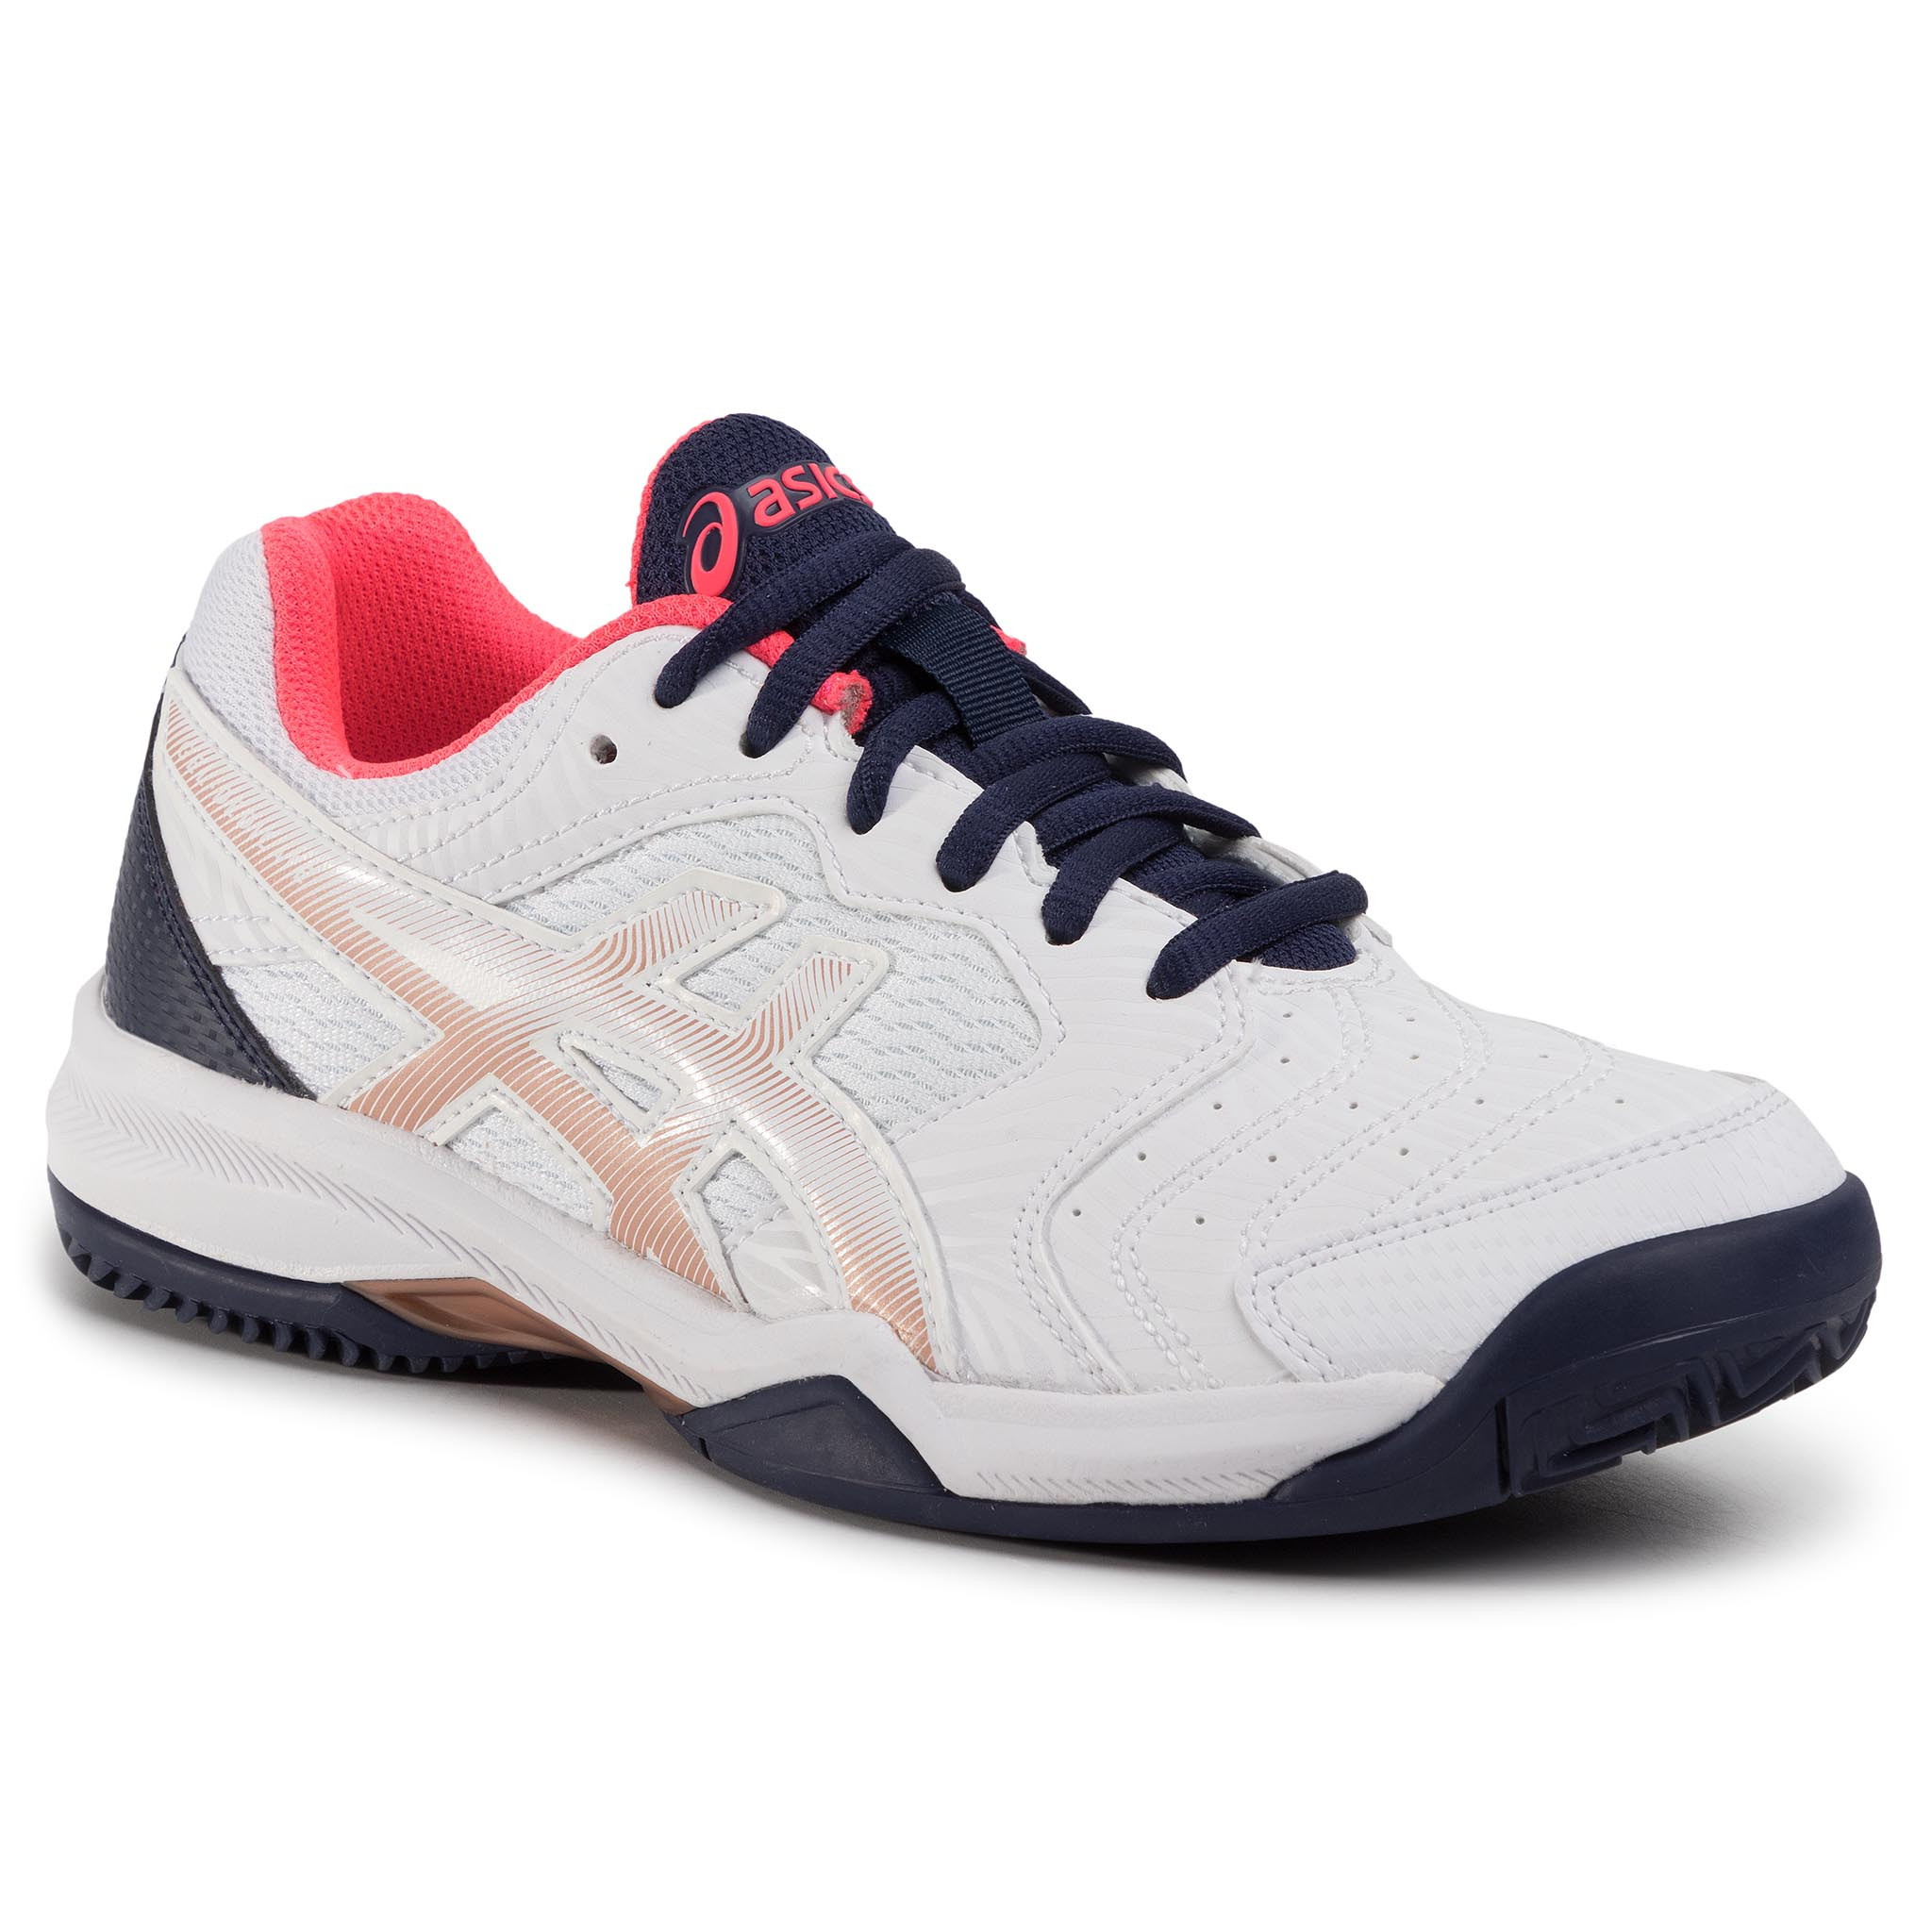 Pantofi Asics - Gel-Dedicate 6 Clay 1042a073 White/White 103 imagine epantofi.ro 2021